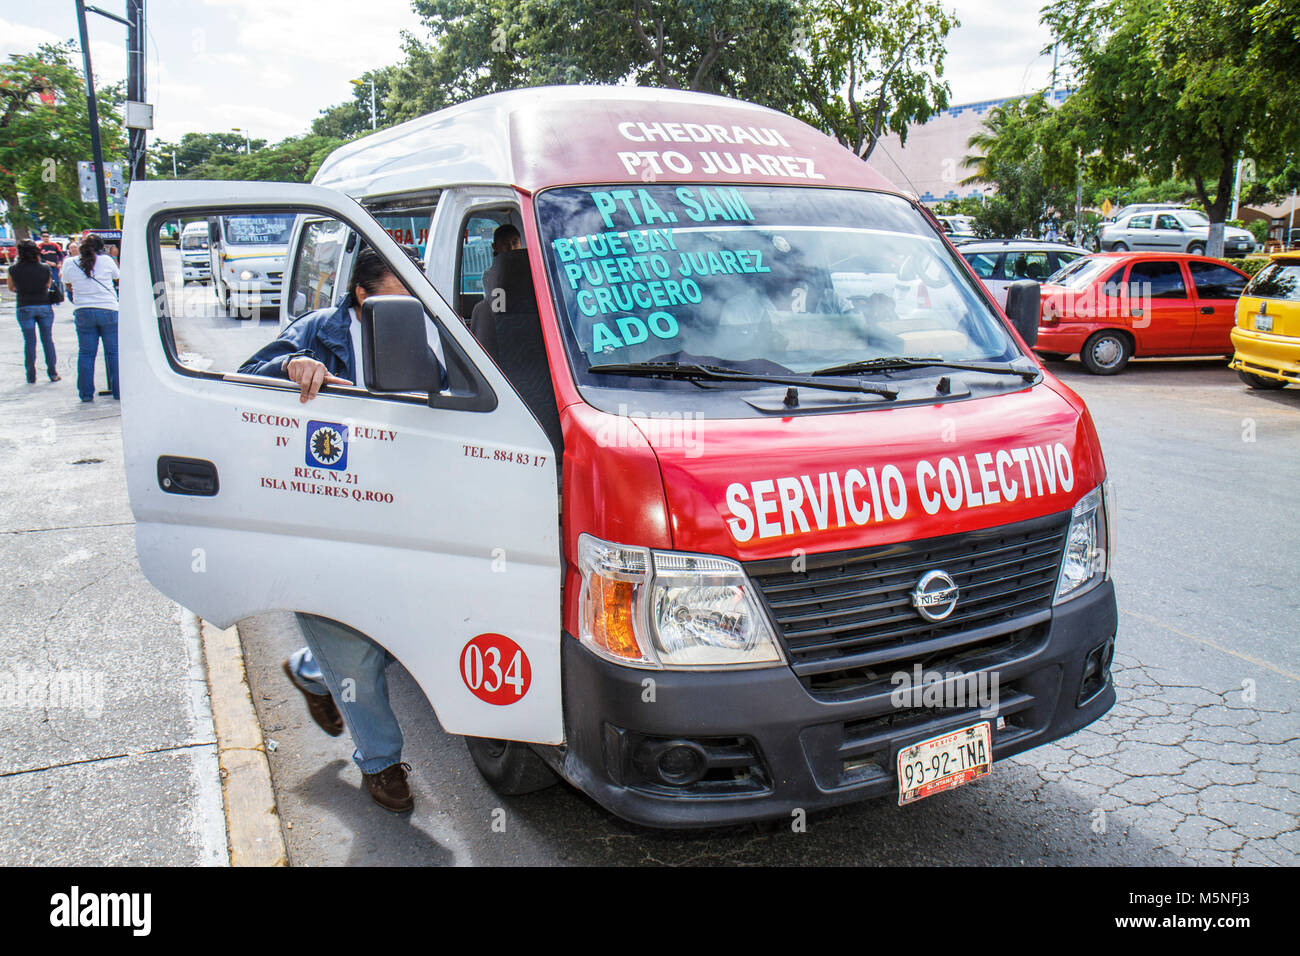 Cancun Mexico Yucatán Peninsula Quintana Roo Avenida Tulum Hispanic man bus van transportation colectivo share taxi Stock Photo